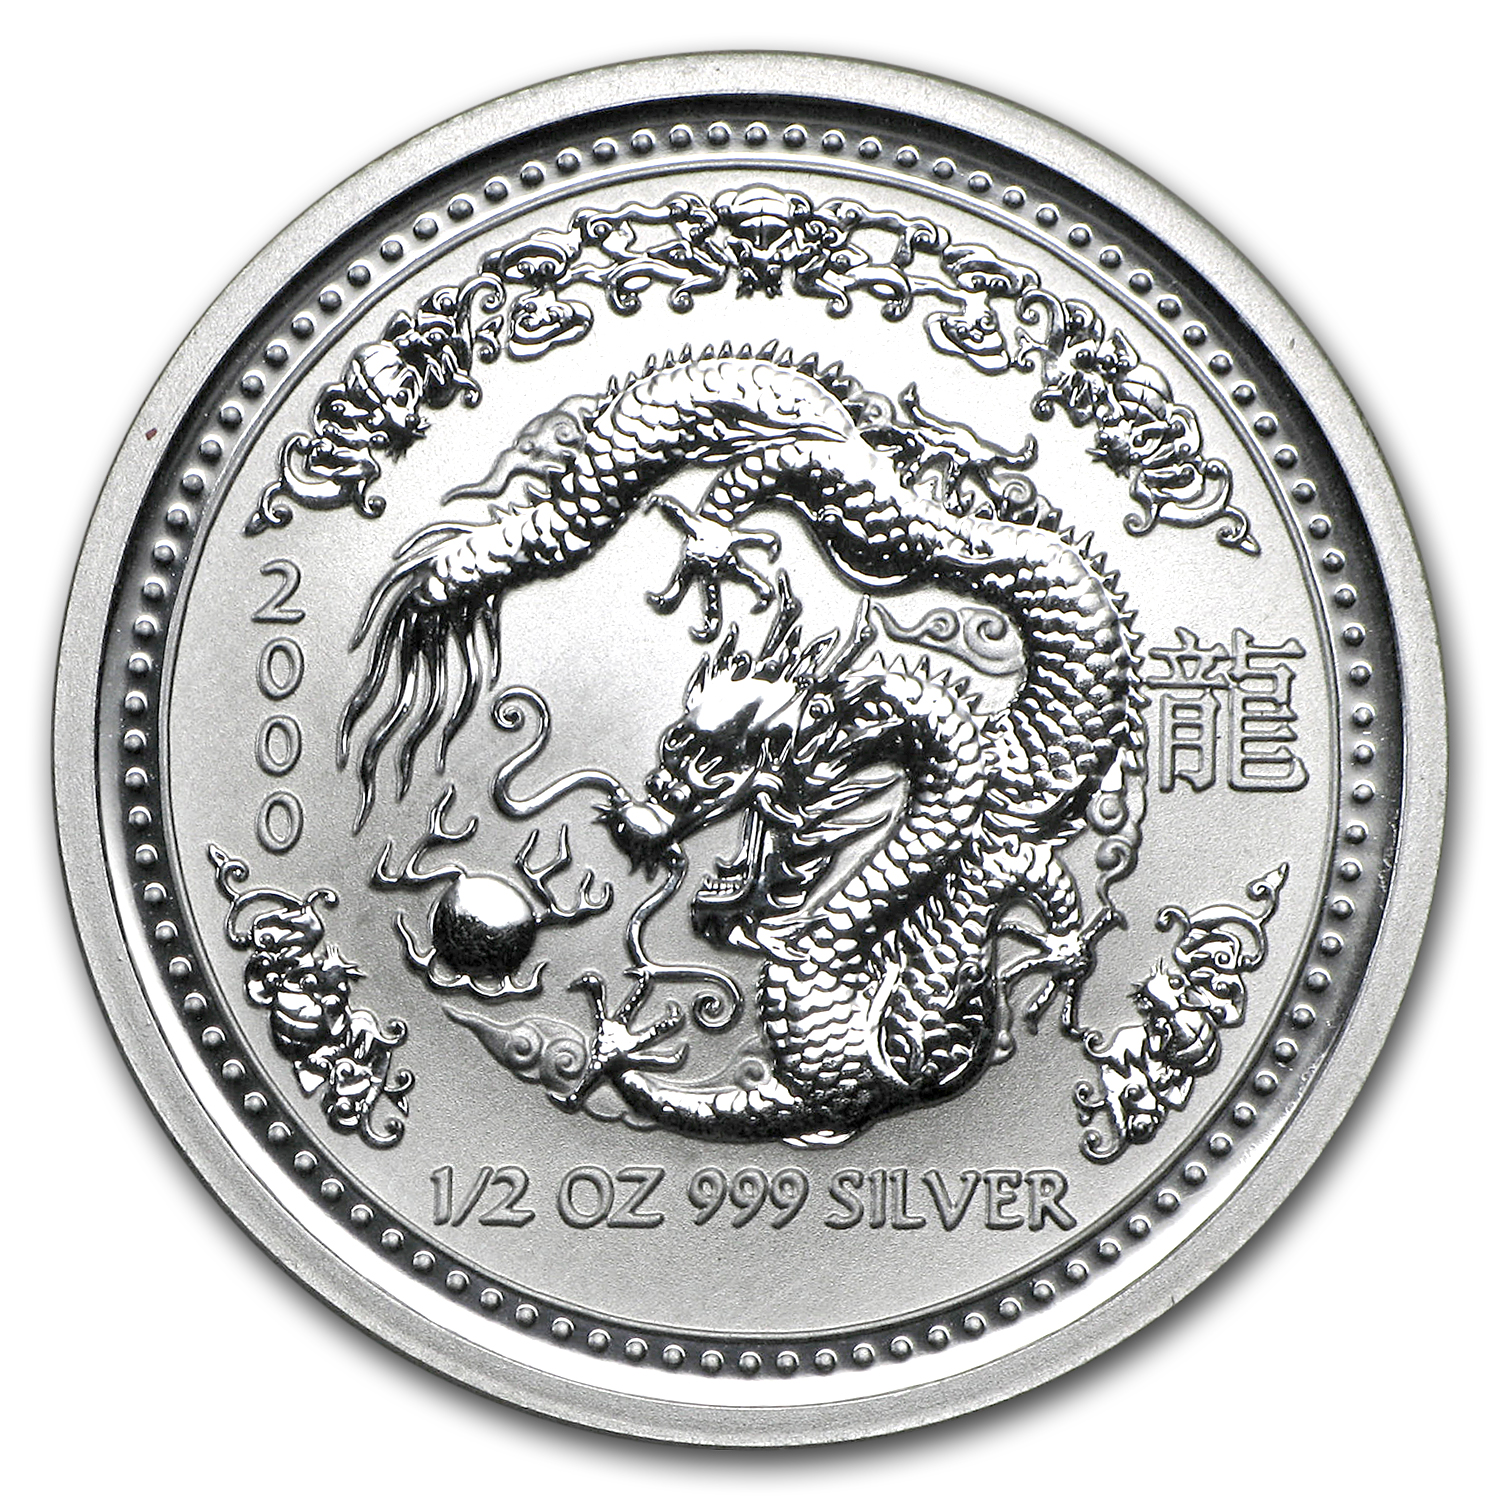 2000 Australia 1/2 oz Silver Year of the Dragon BU